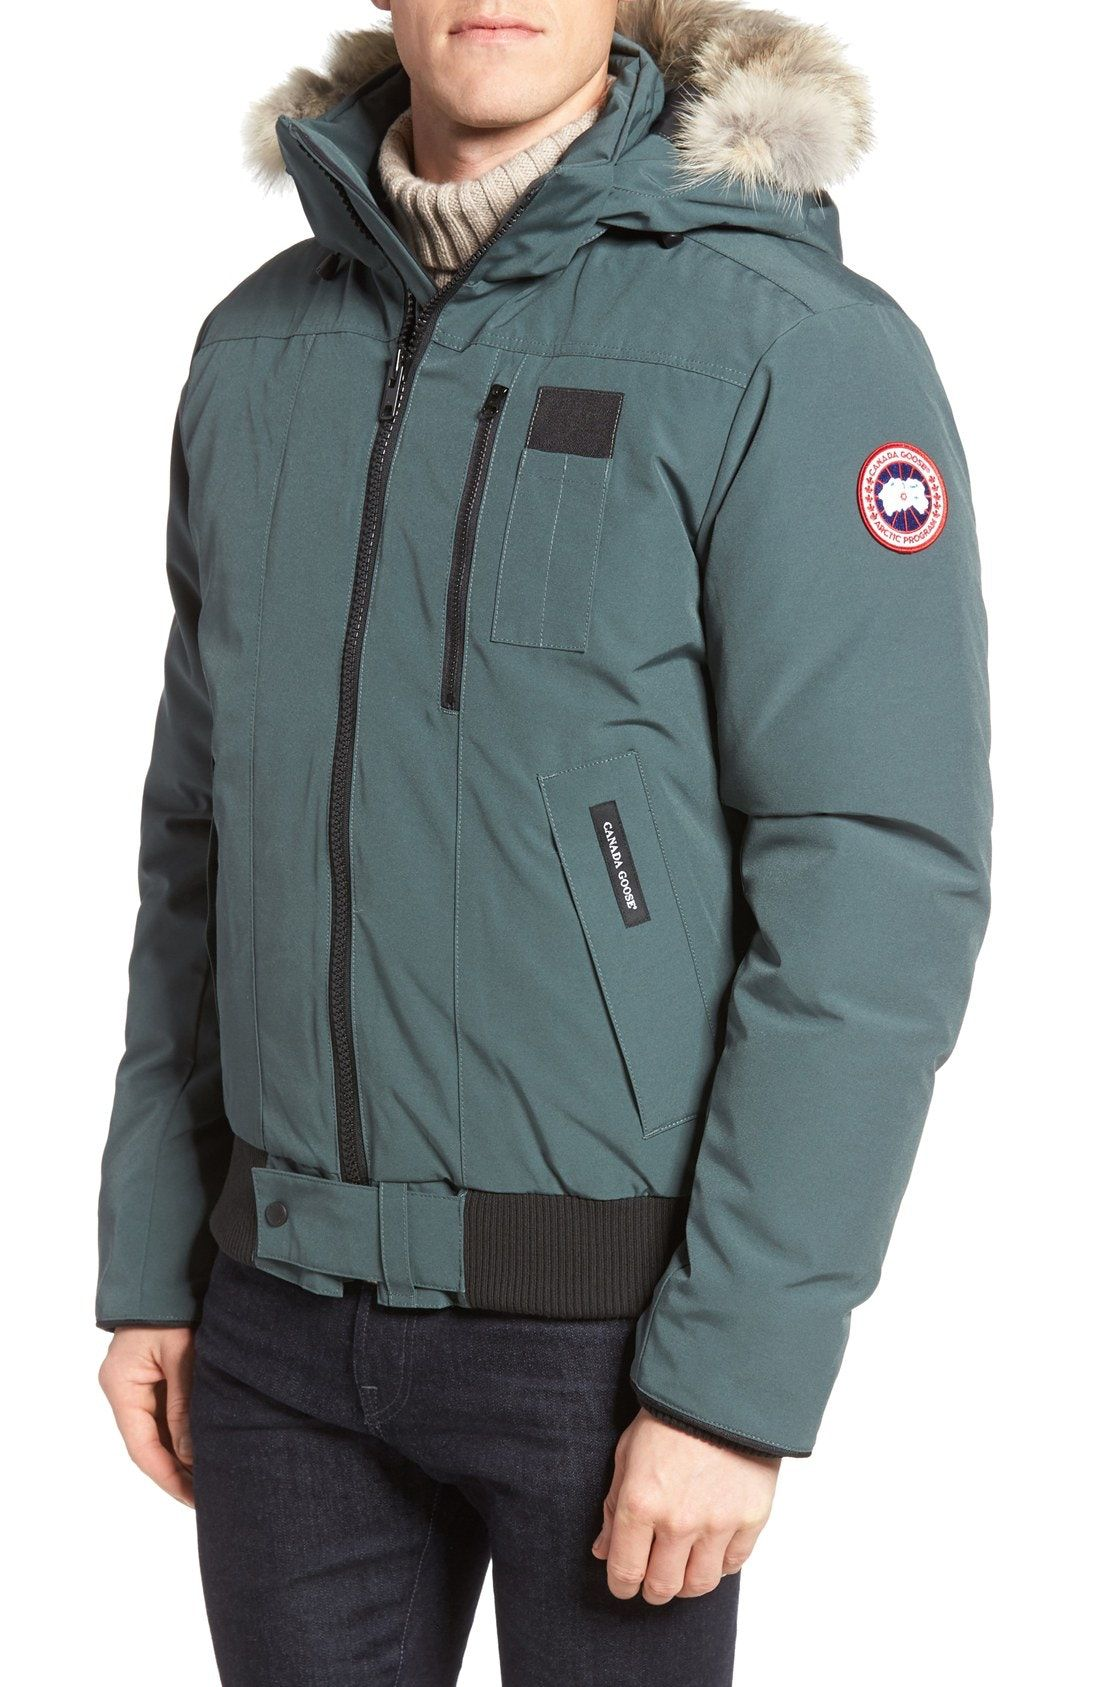 New Canada Goose Borden Regular Fit Bomber Jacket with Genuine Coyote Trim ,FOREST GREEN fashion